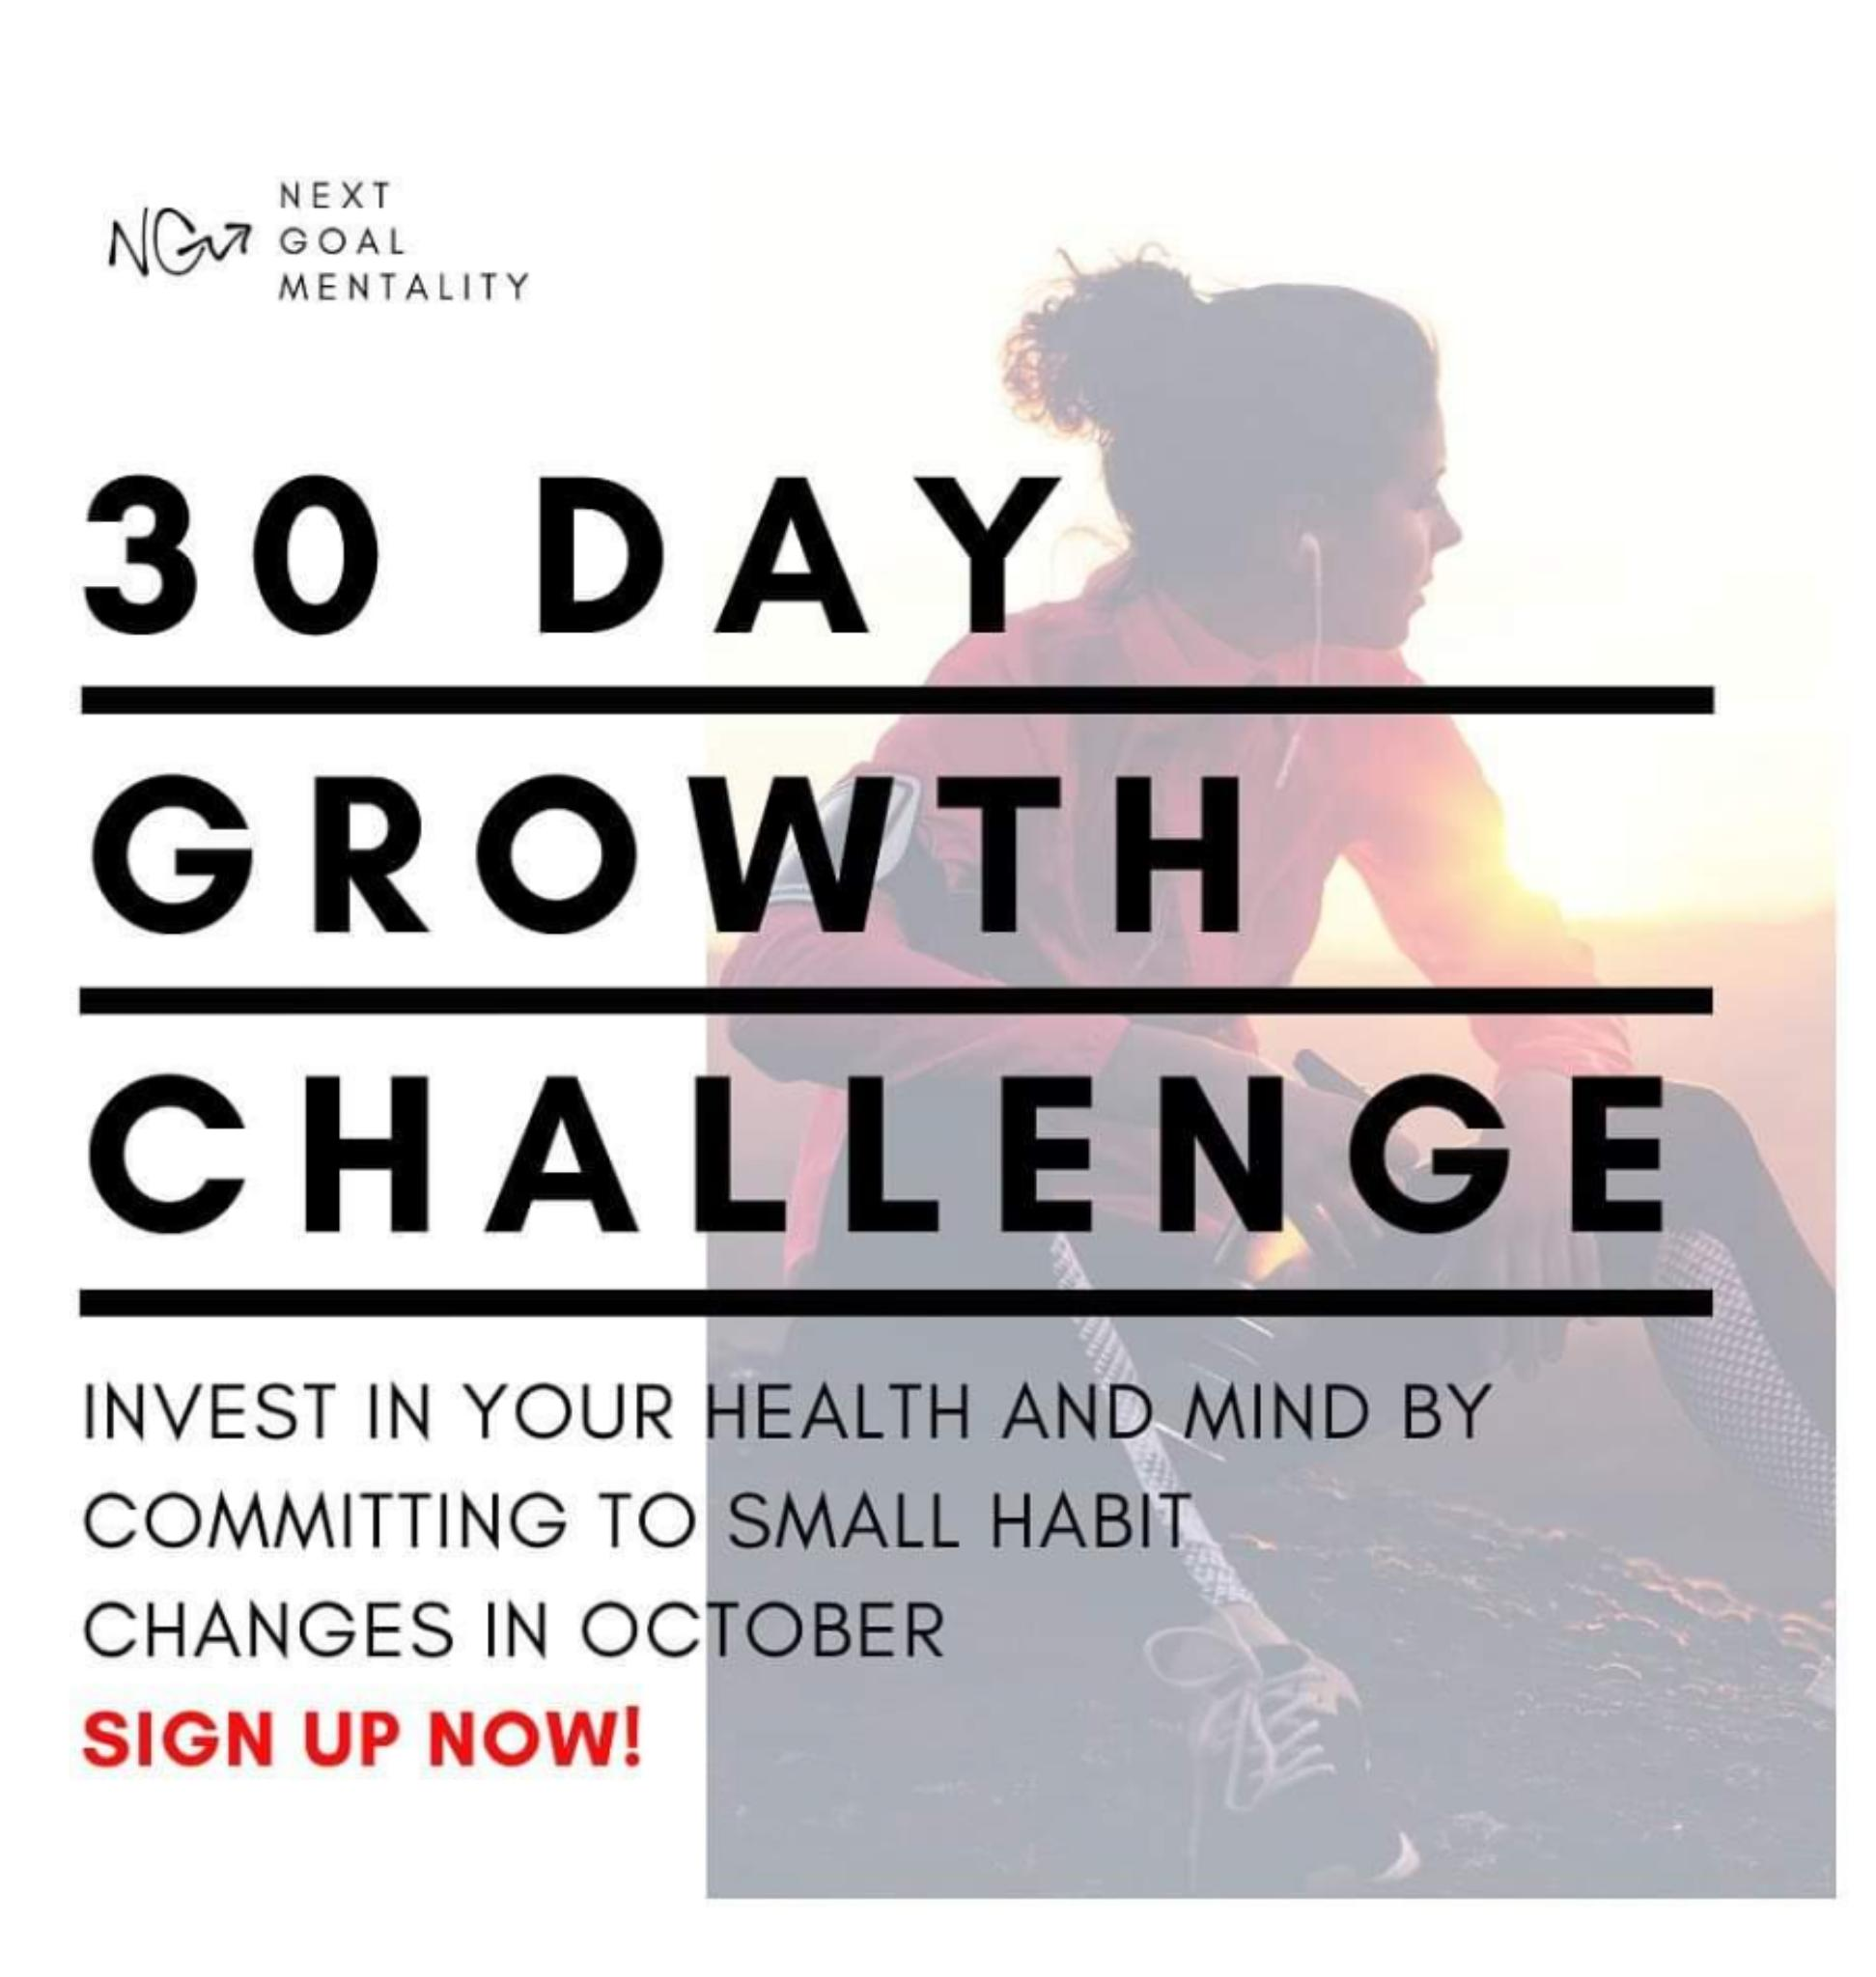 AID/w OOAL MENTALITY 3. DAY GROWTH CHALLENGE INVEST IN YOUR HEALTH AND MIND BY COMMITTING TO SMALL HABIT CHANGES IN OCTOBER SIGN UP NOW! https://inspirational.ly